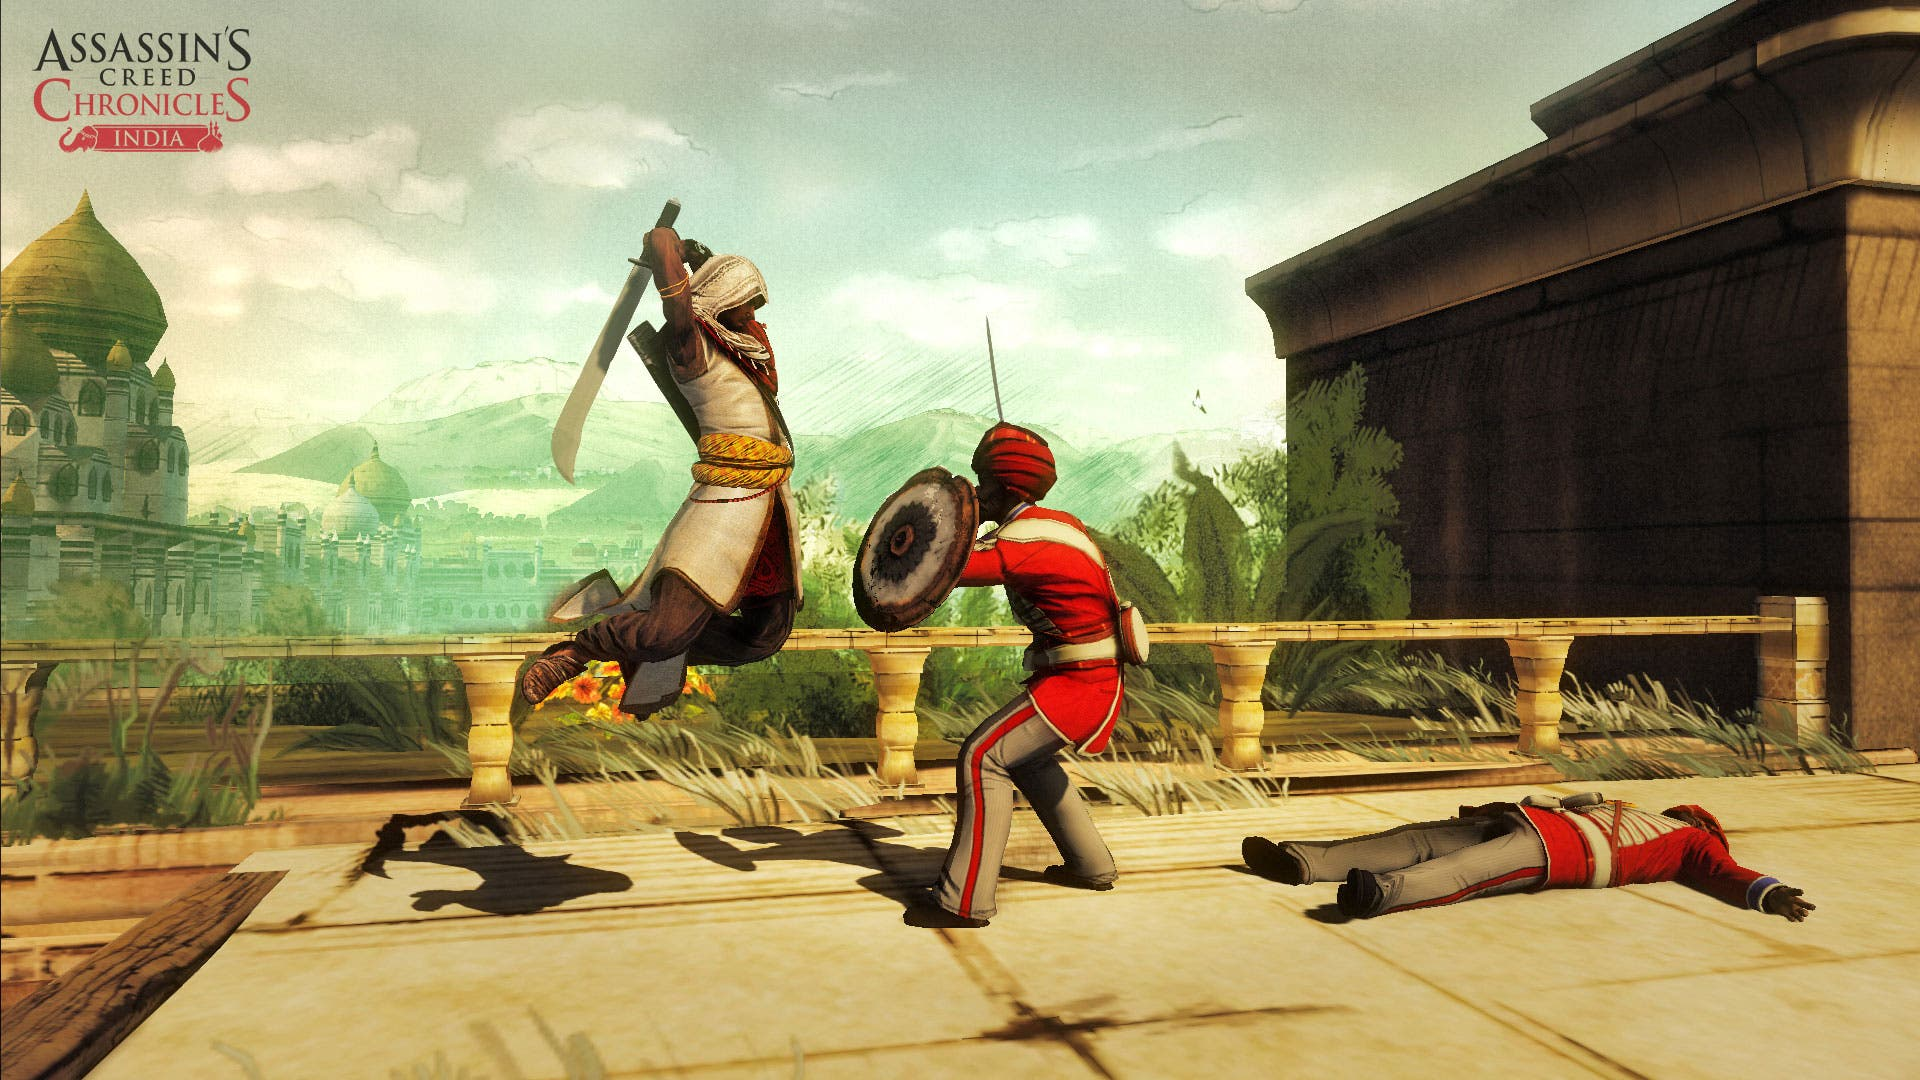 Assassins Creed Chronicles 3 India